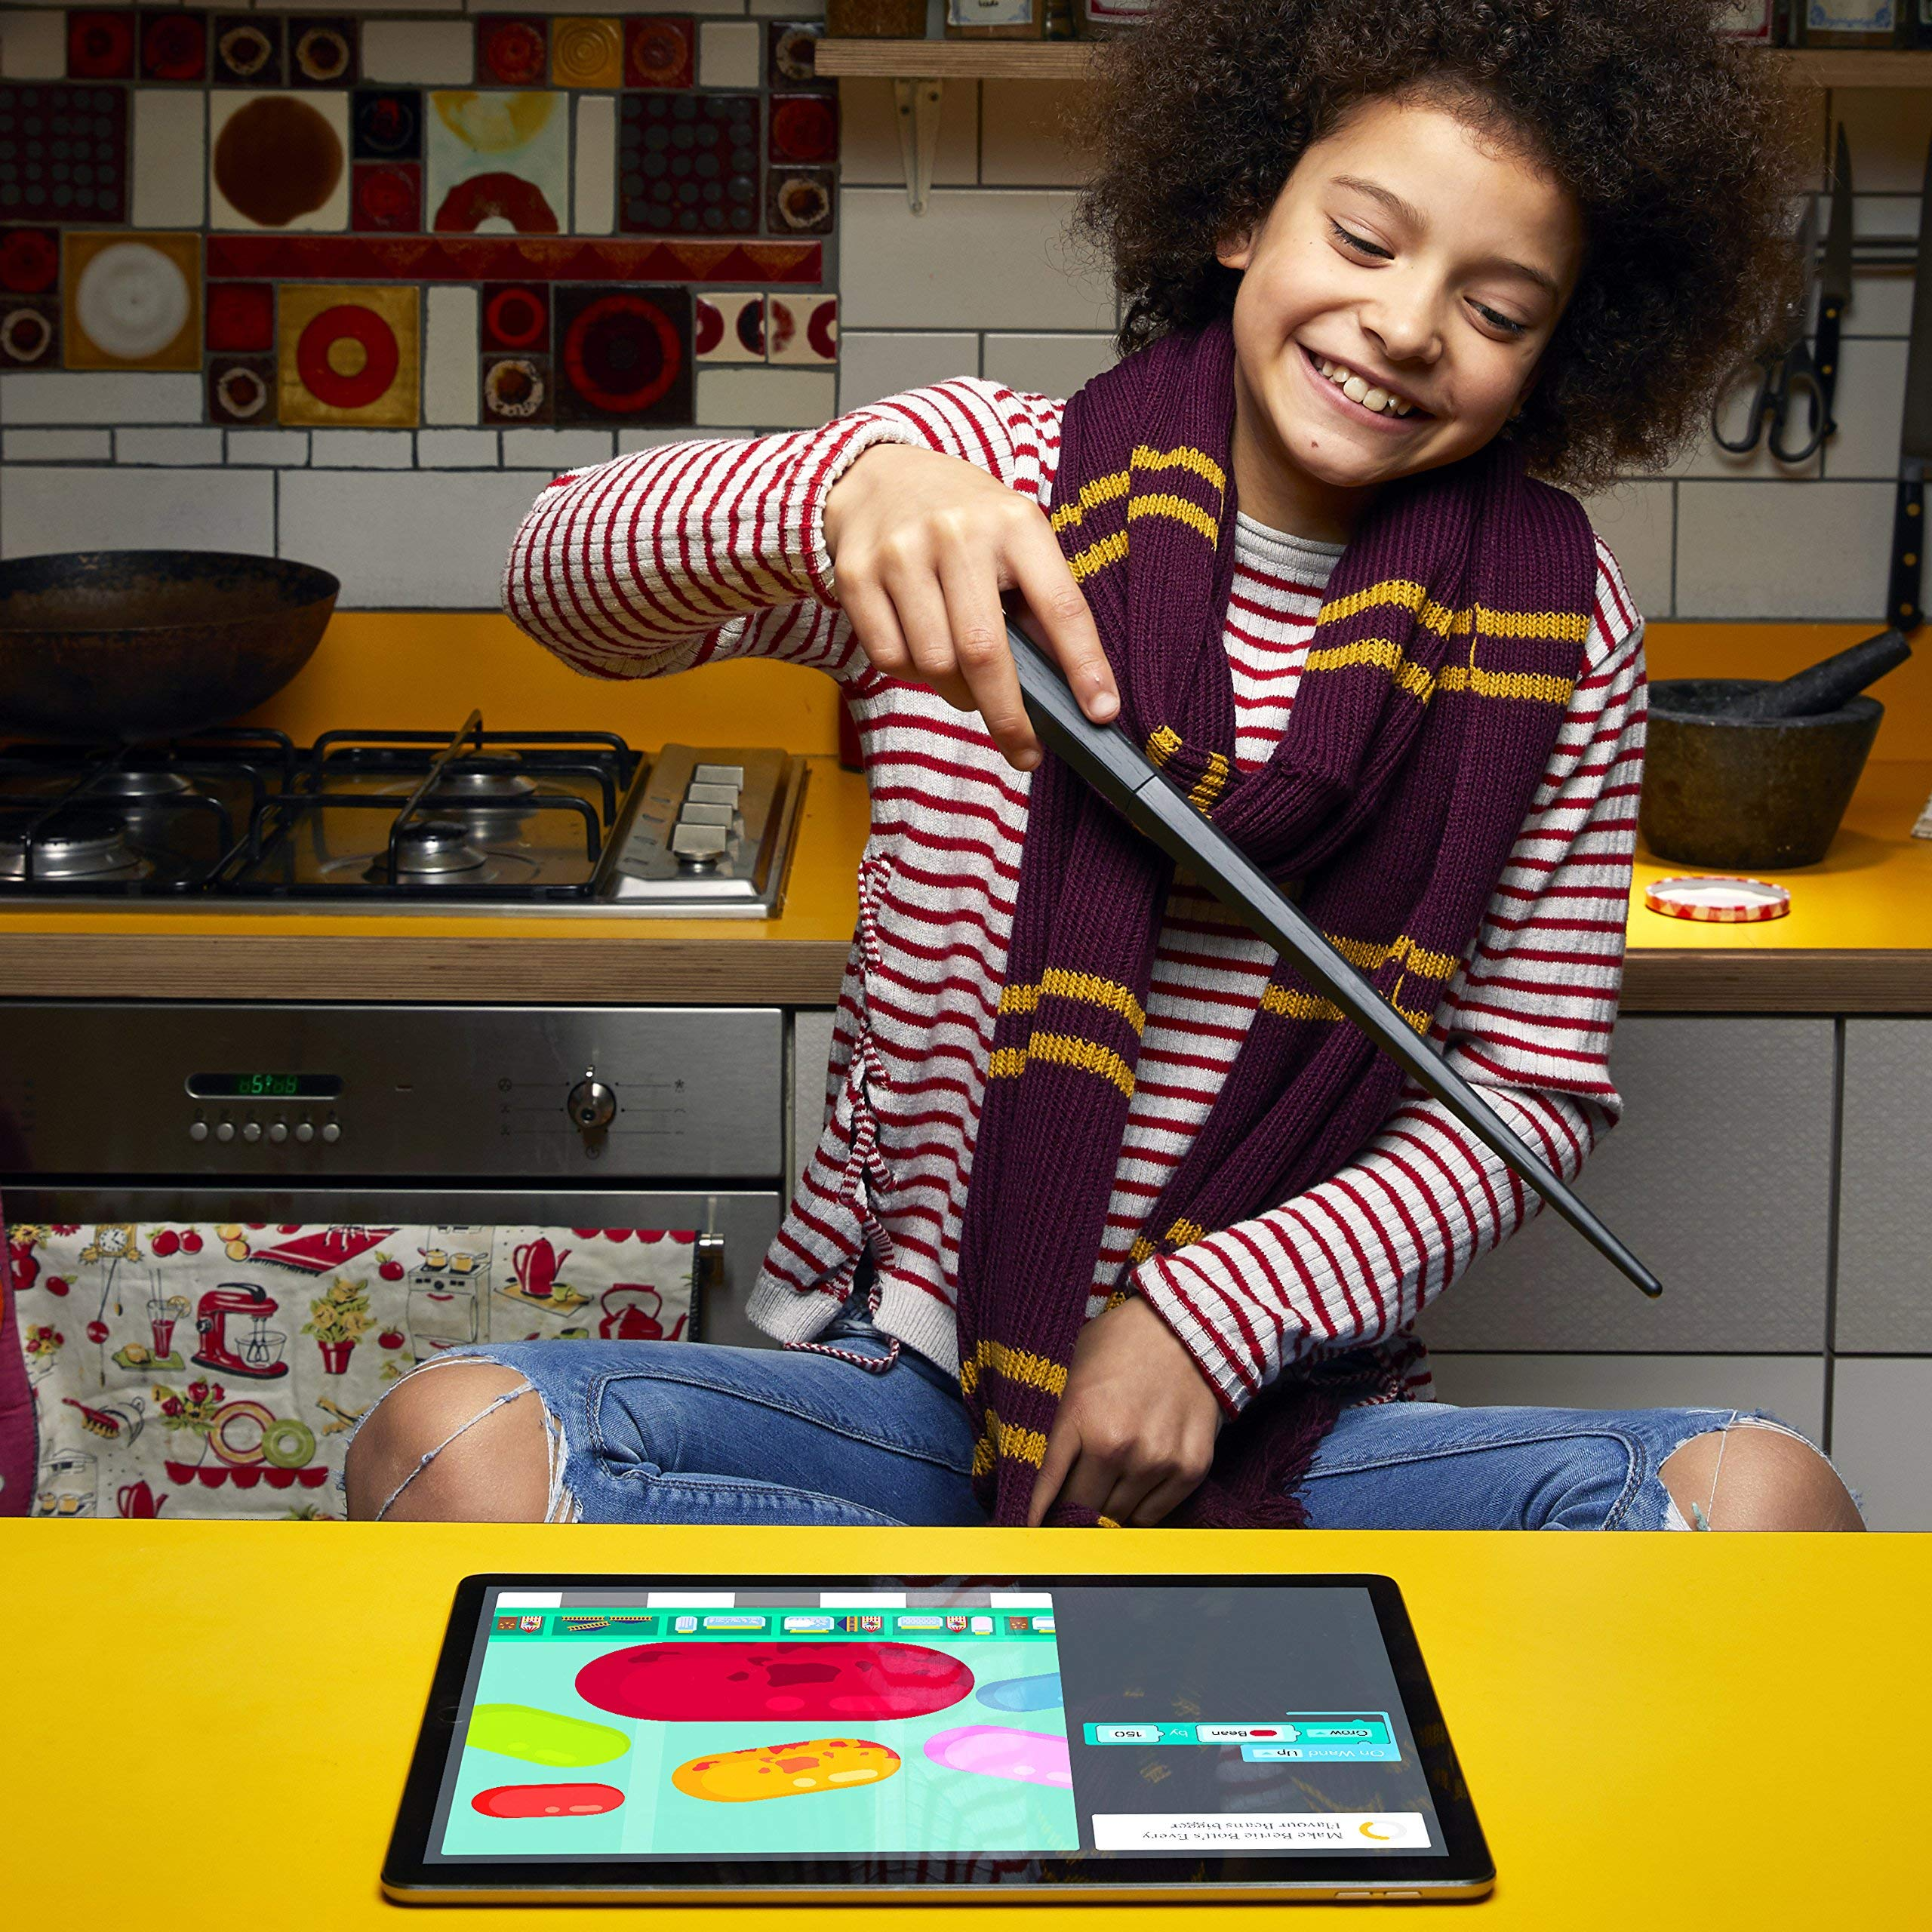 Kano Harry Potter Coding Kit - Build a Wand. Learn To Code. Make Magic. (Renewed) by Kano (Image #9)